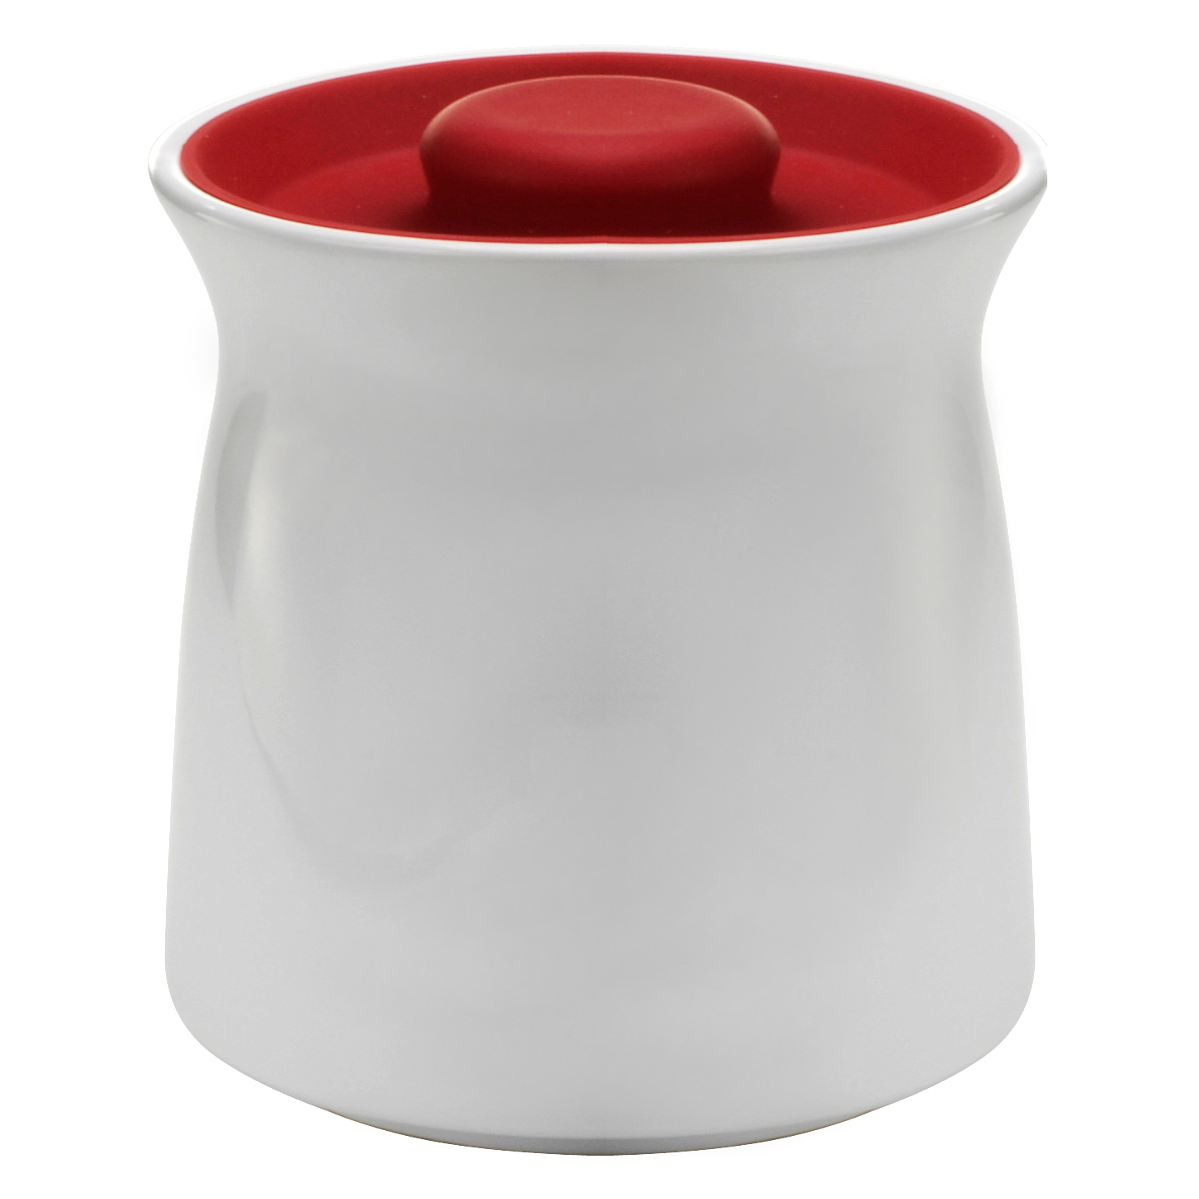 Anchor Hocking Ceramic Studio Canister with Cherry Red Airtight Silicone Lid, 48 Ounce